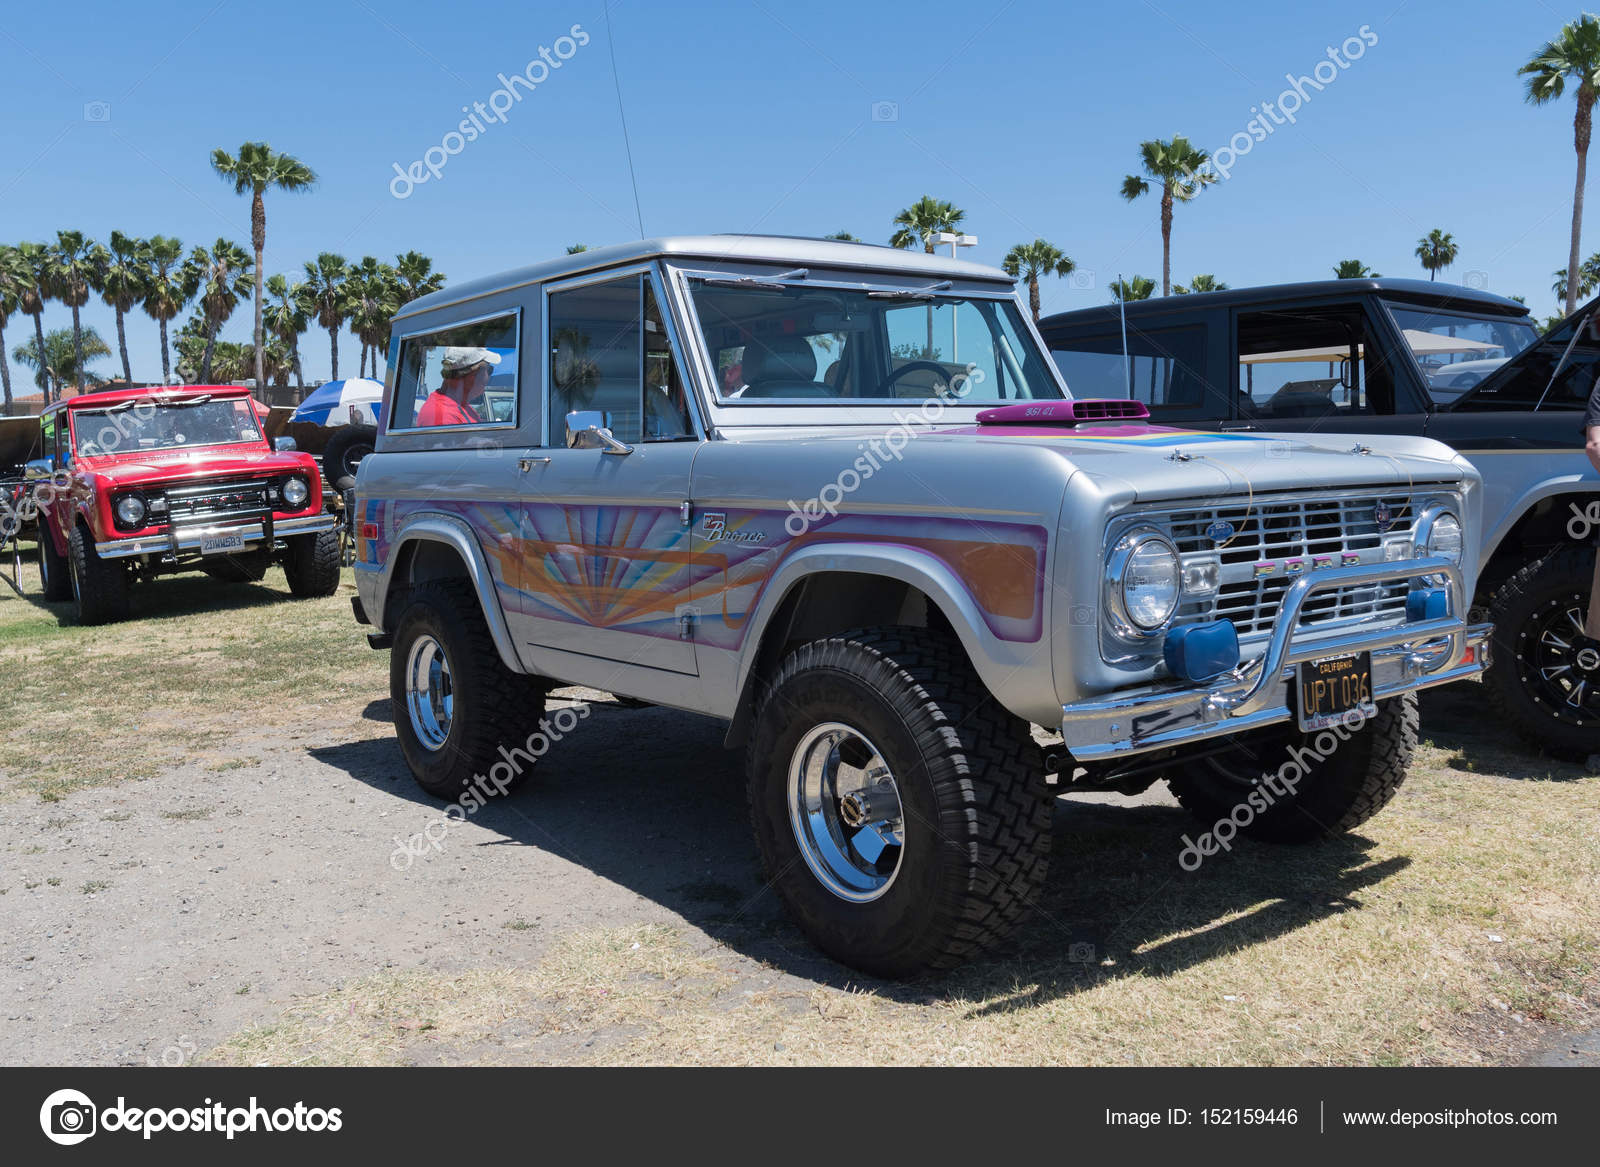 2017 Ford Bronco >> Ford Bronco On Display Stock Editorial Photo C Bettorodrigues